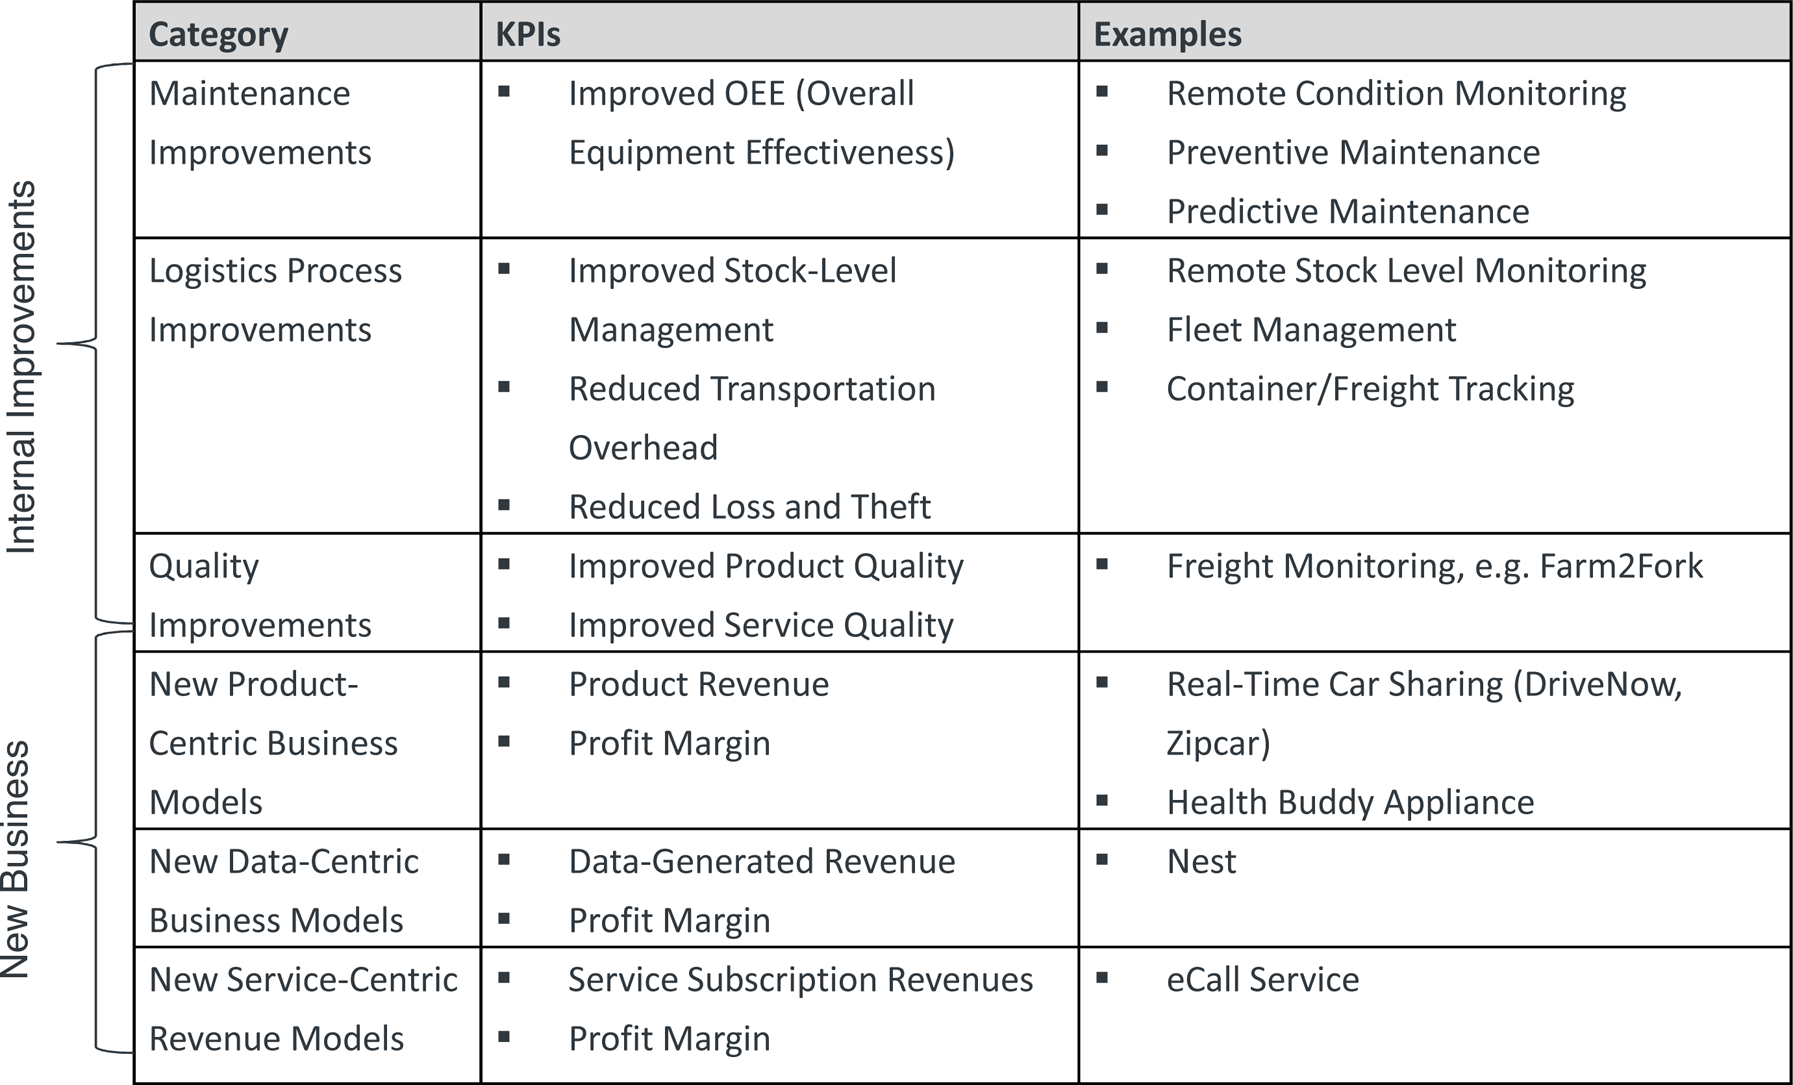 IoT Business Opportunity Categories